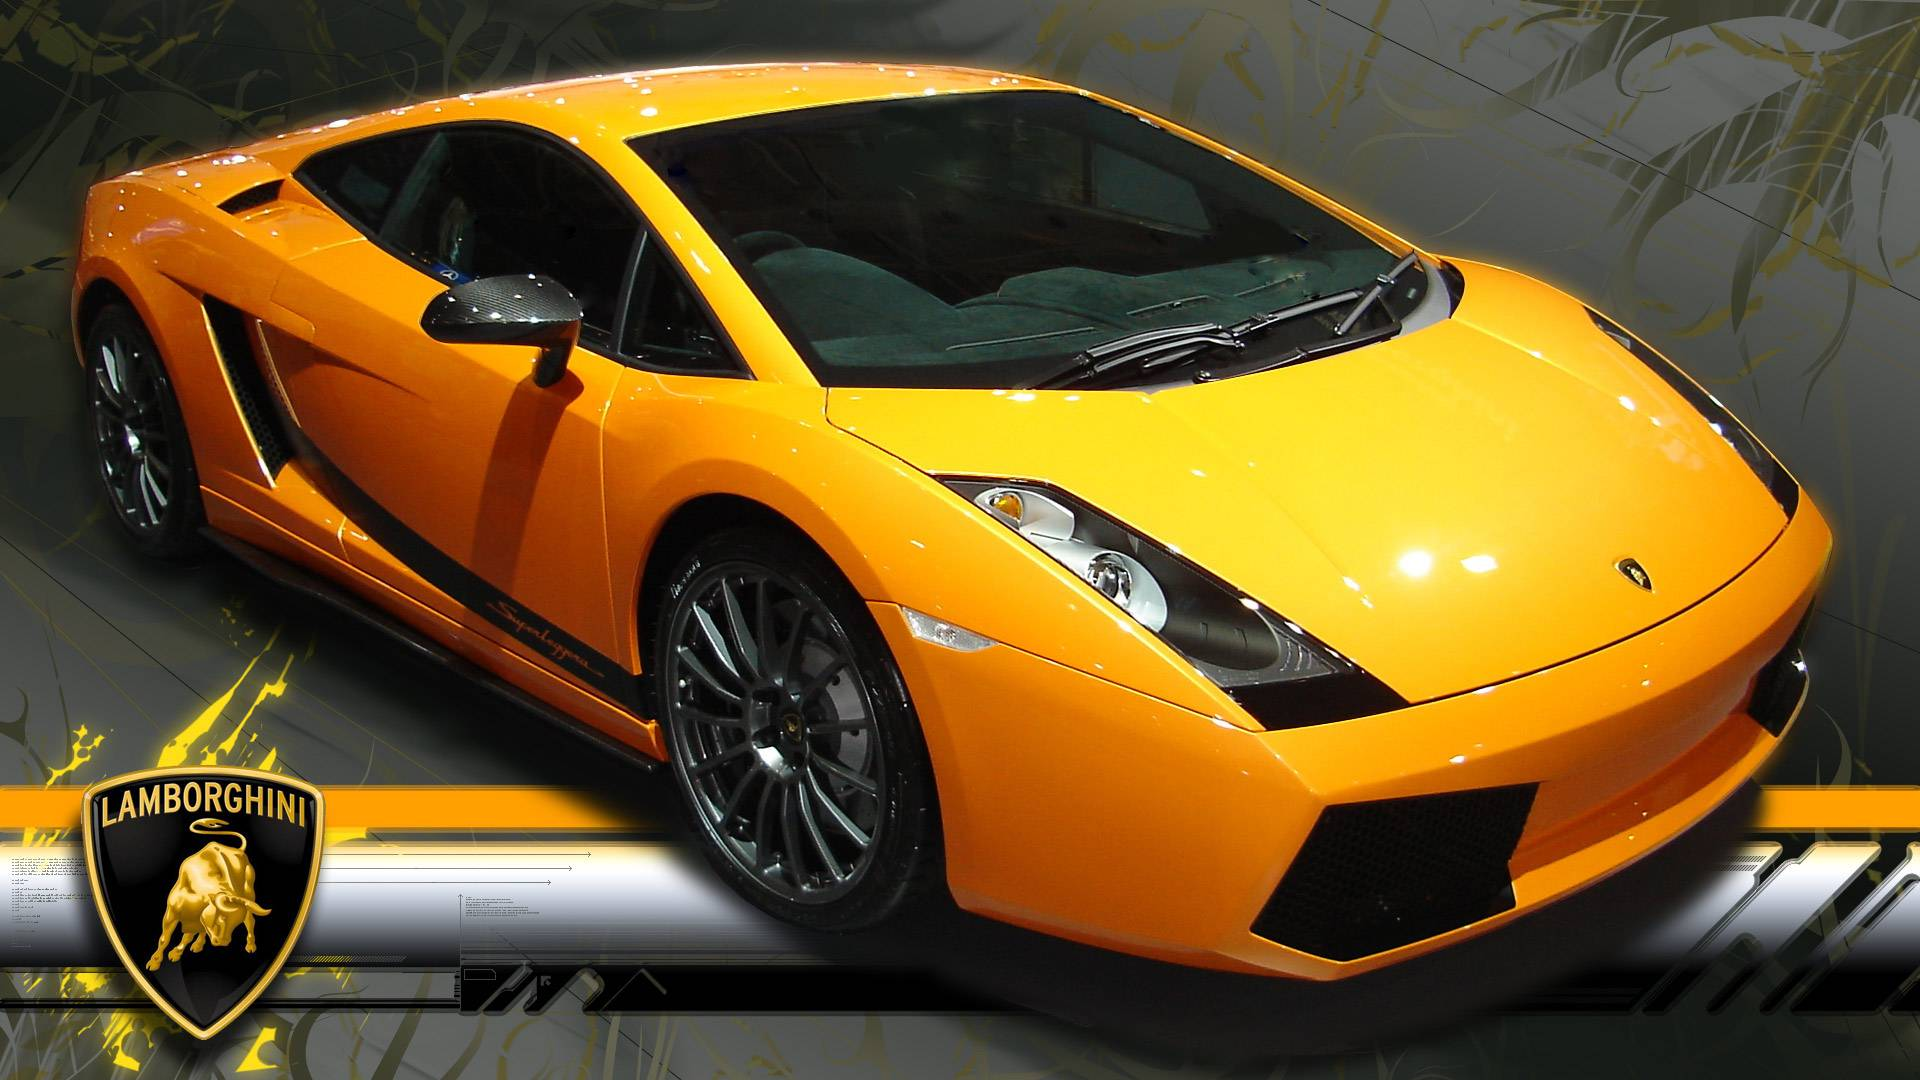 HD Lamborghini Wallpapers HD Wallpapers 1920x1080